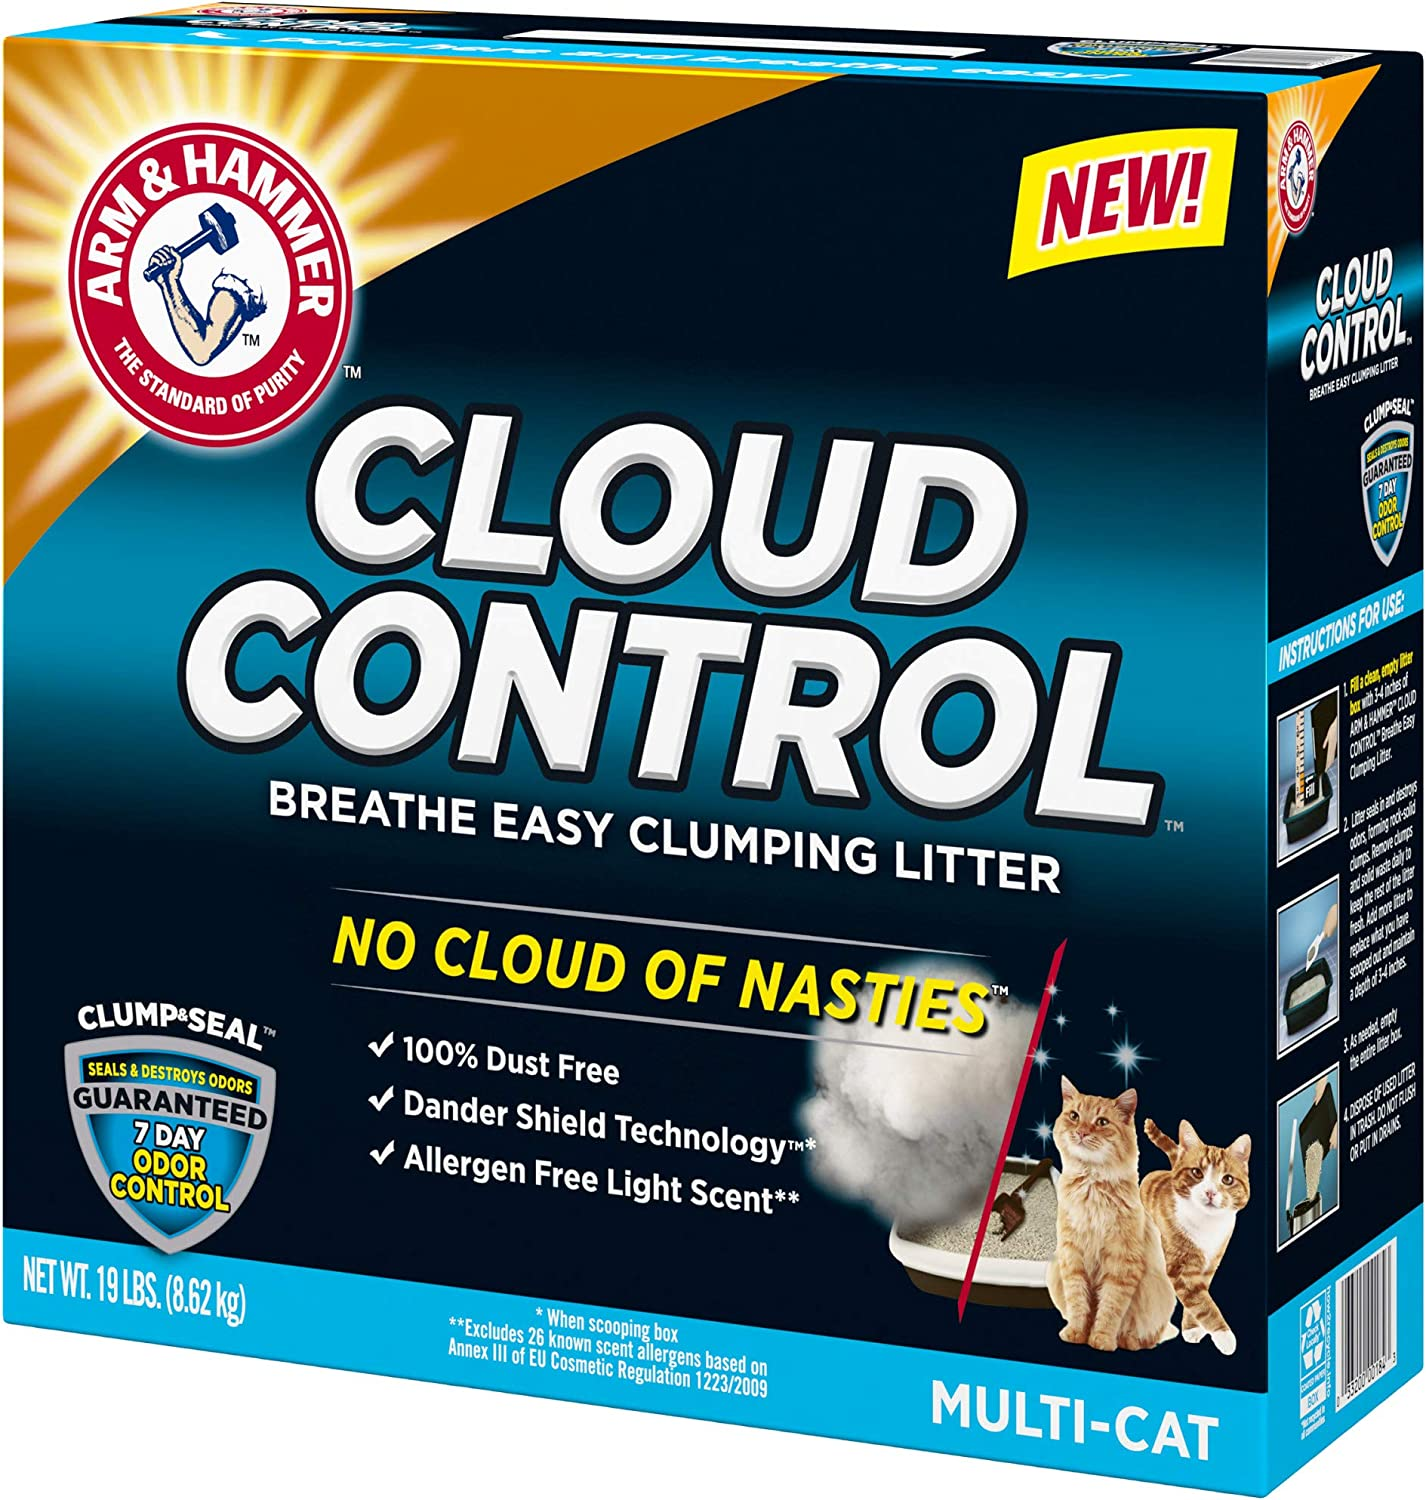 Arm & Hammer Clump & Seal Cloud Control Multi-Cat Litter